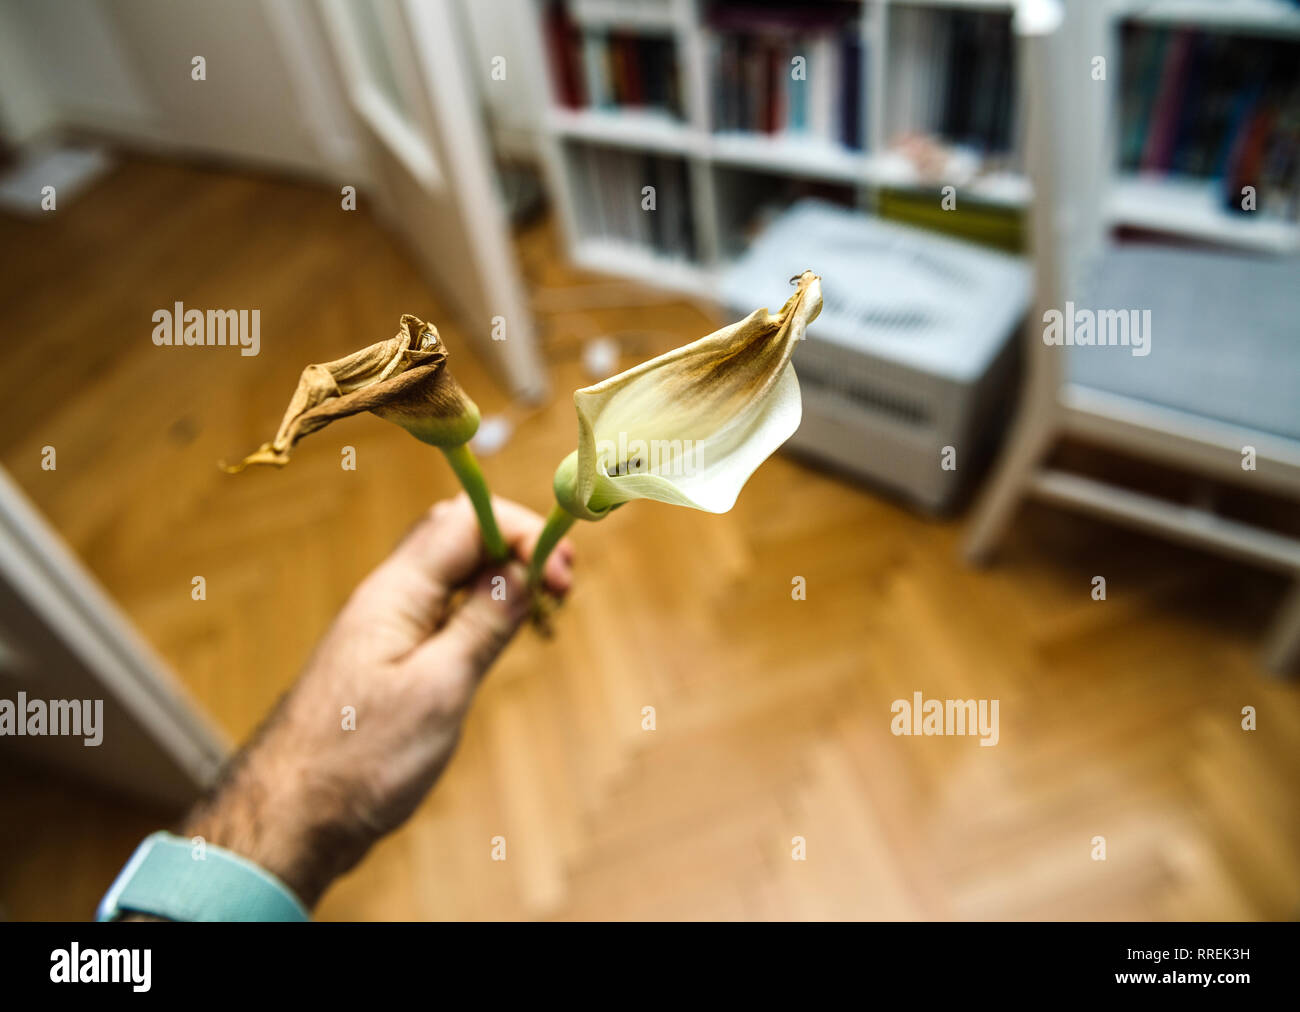 POV at hand holding two dead calla flower against colorful background deadpan home environment background - Stock Image